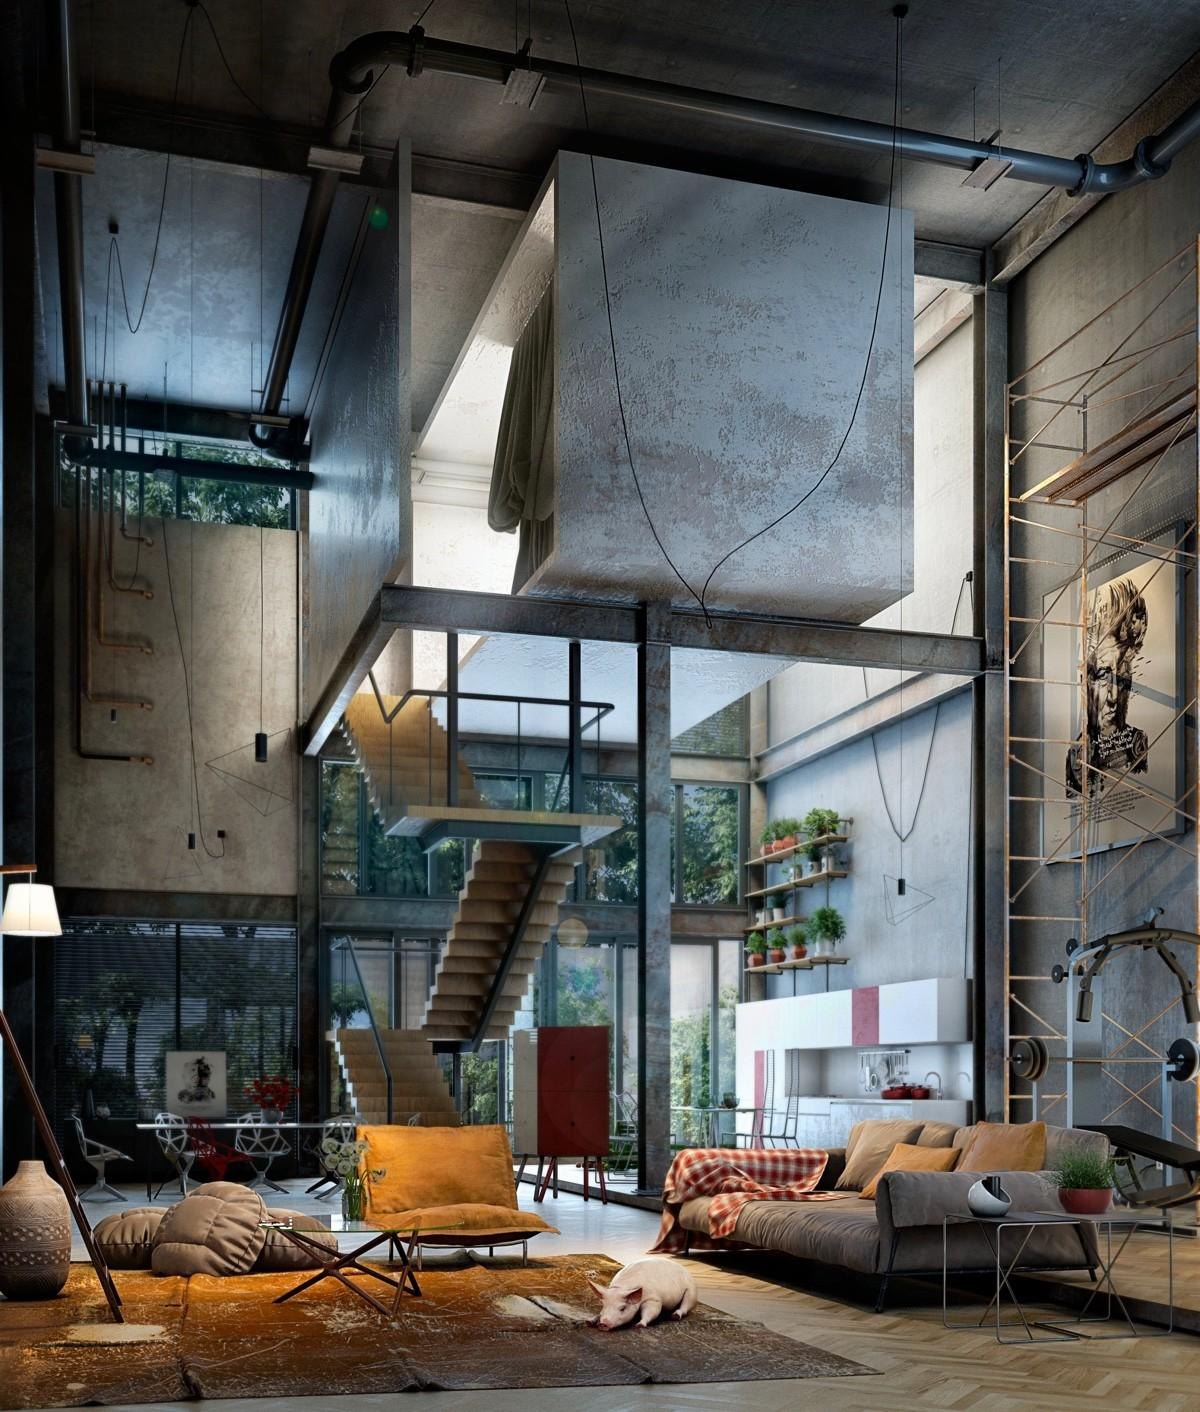 Incredible Lofts Push Boundaries